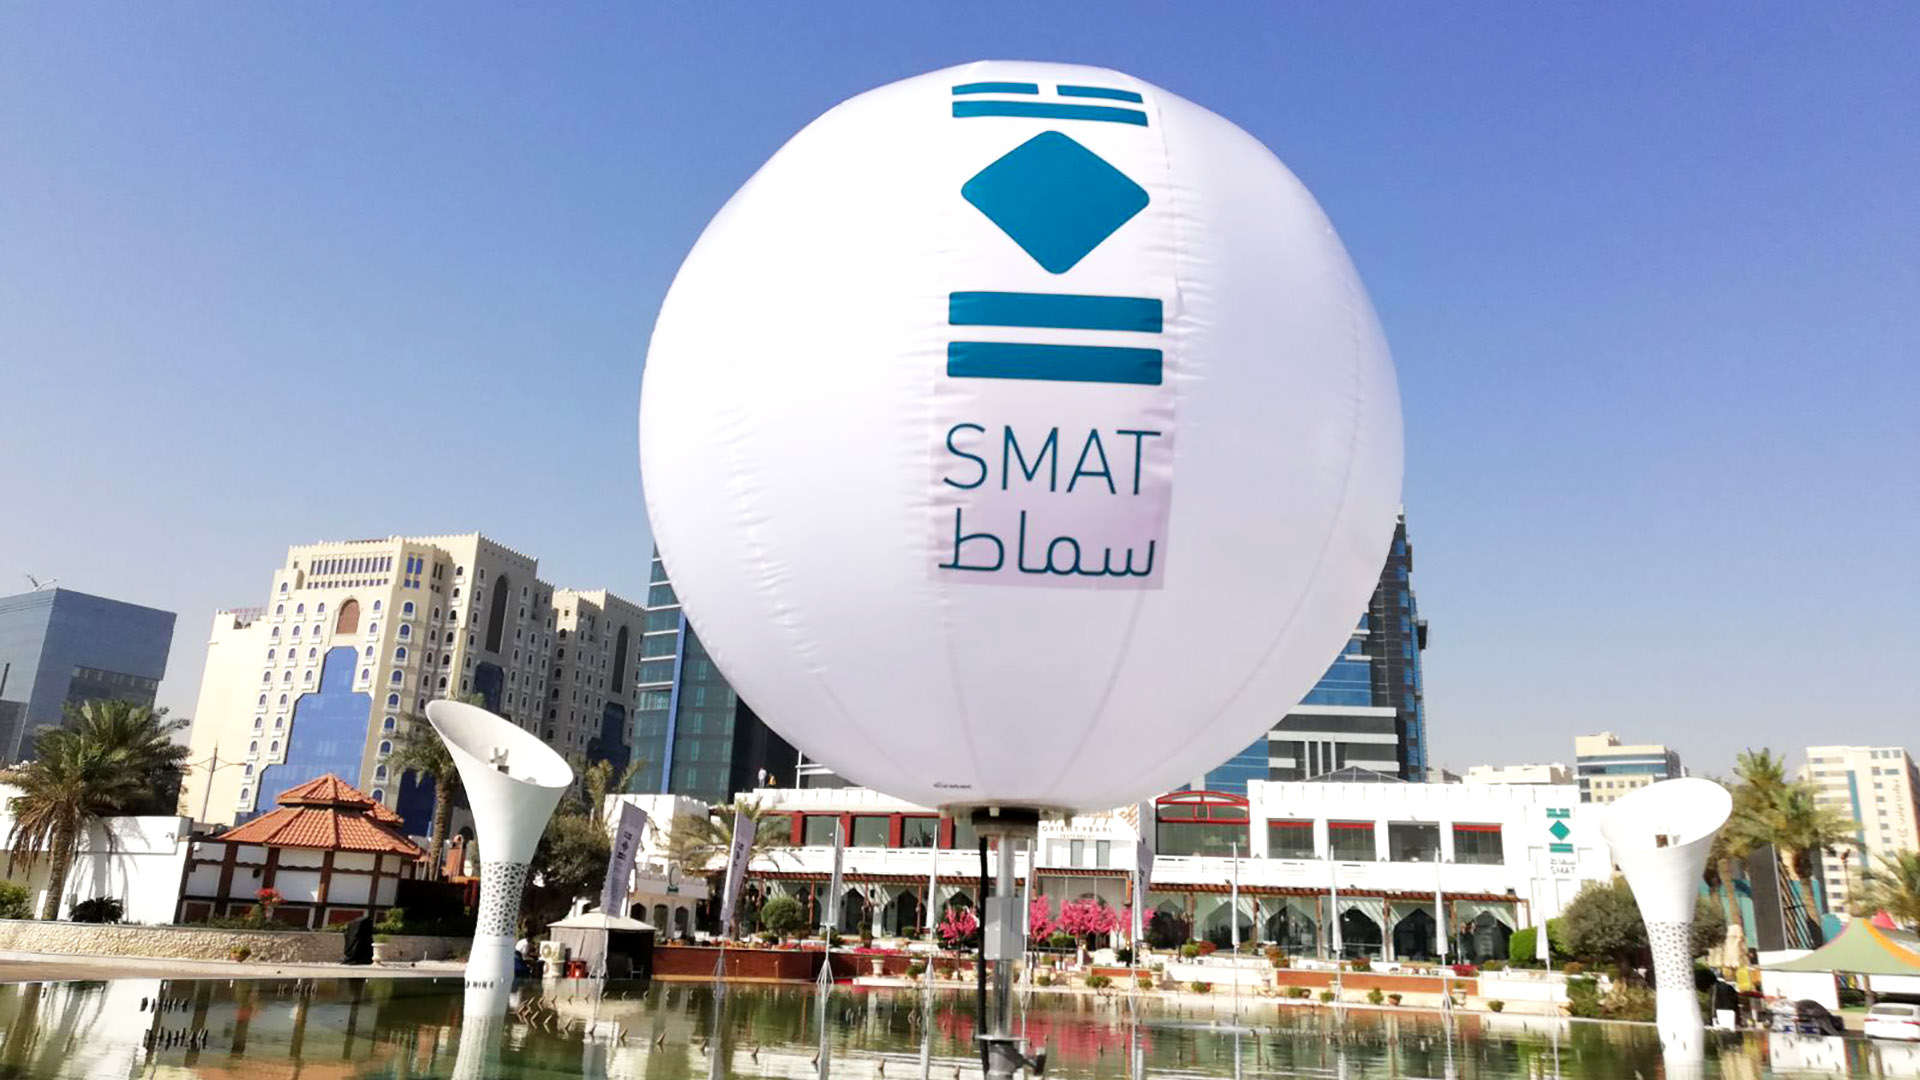 Printed Large Balloon for SMAT Restaurant produced by ME Visual, Qatar